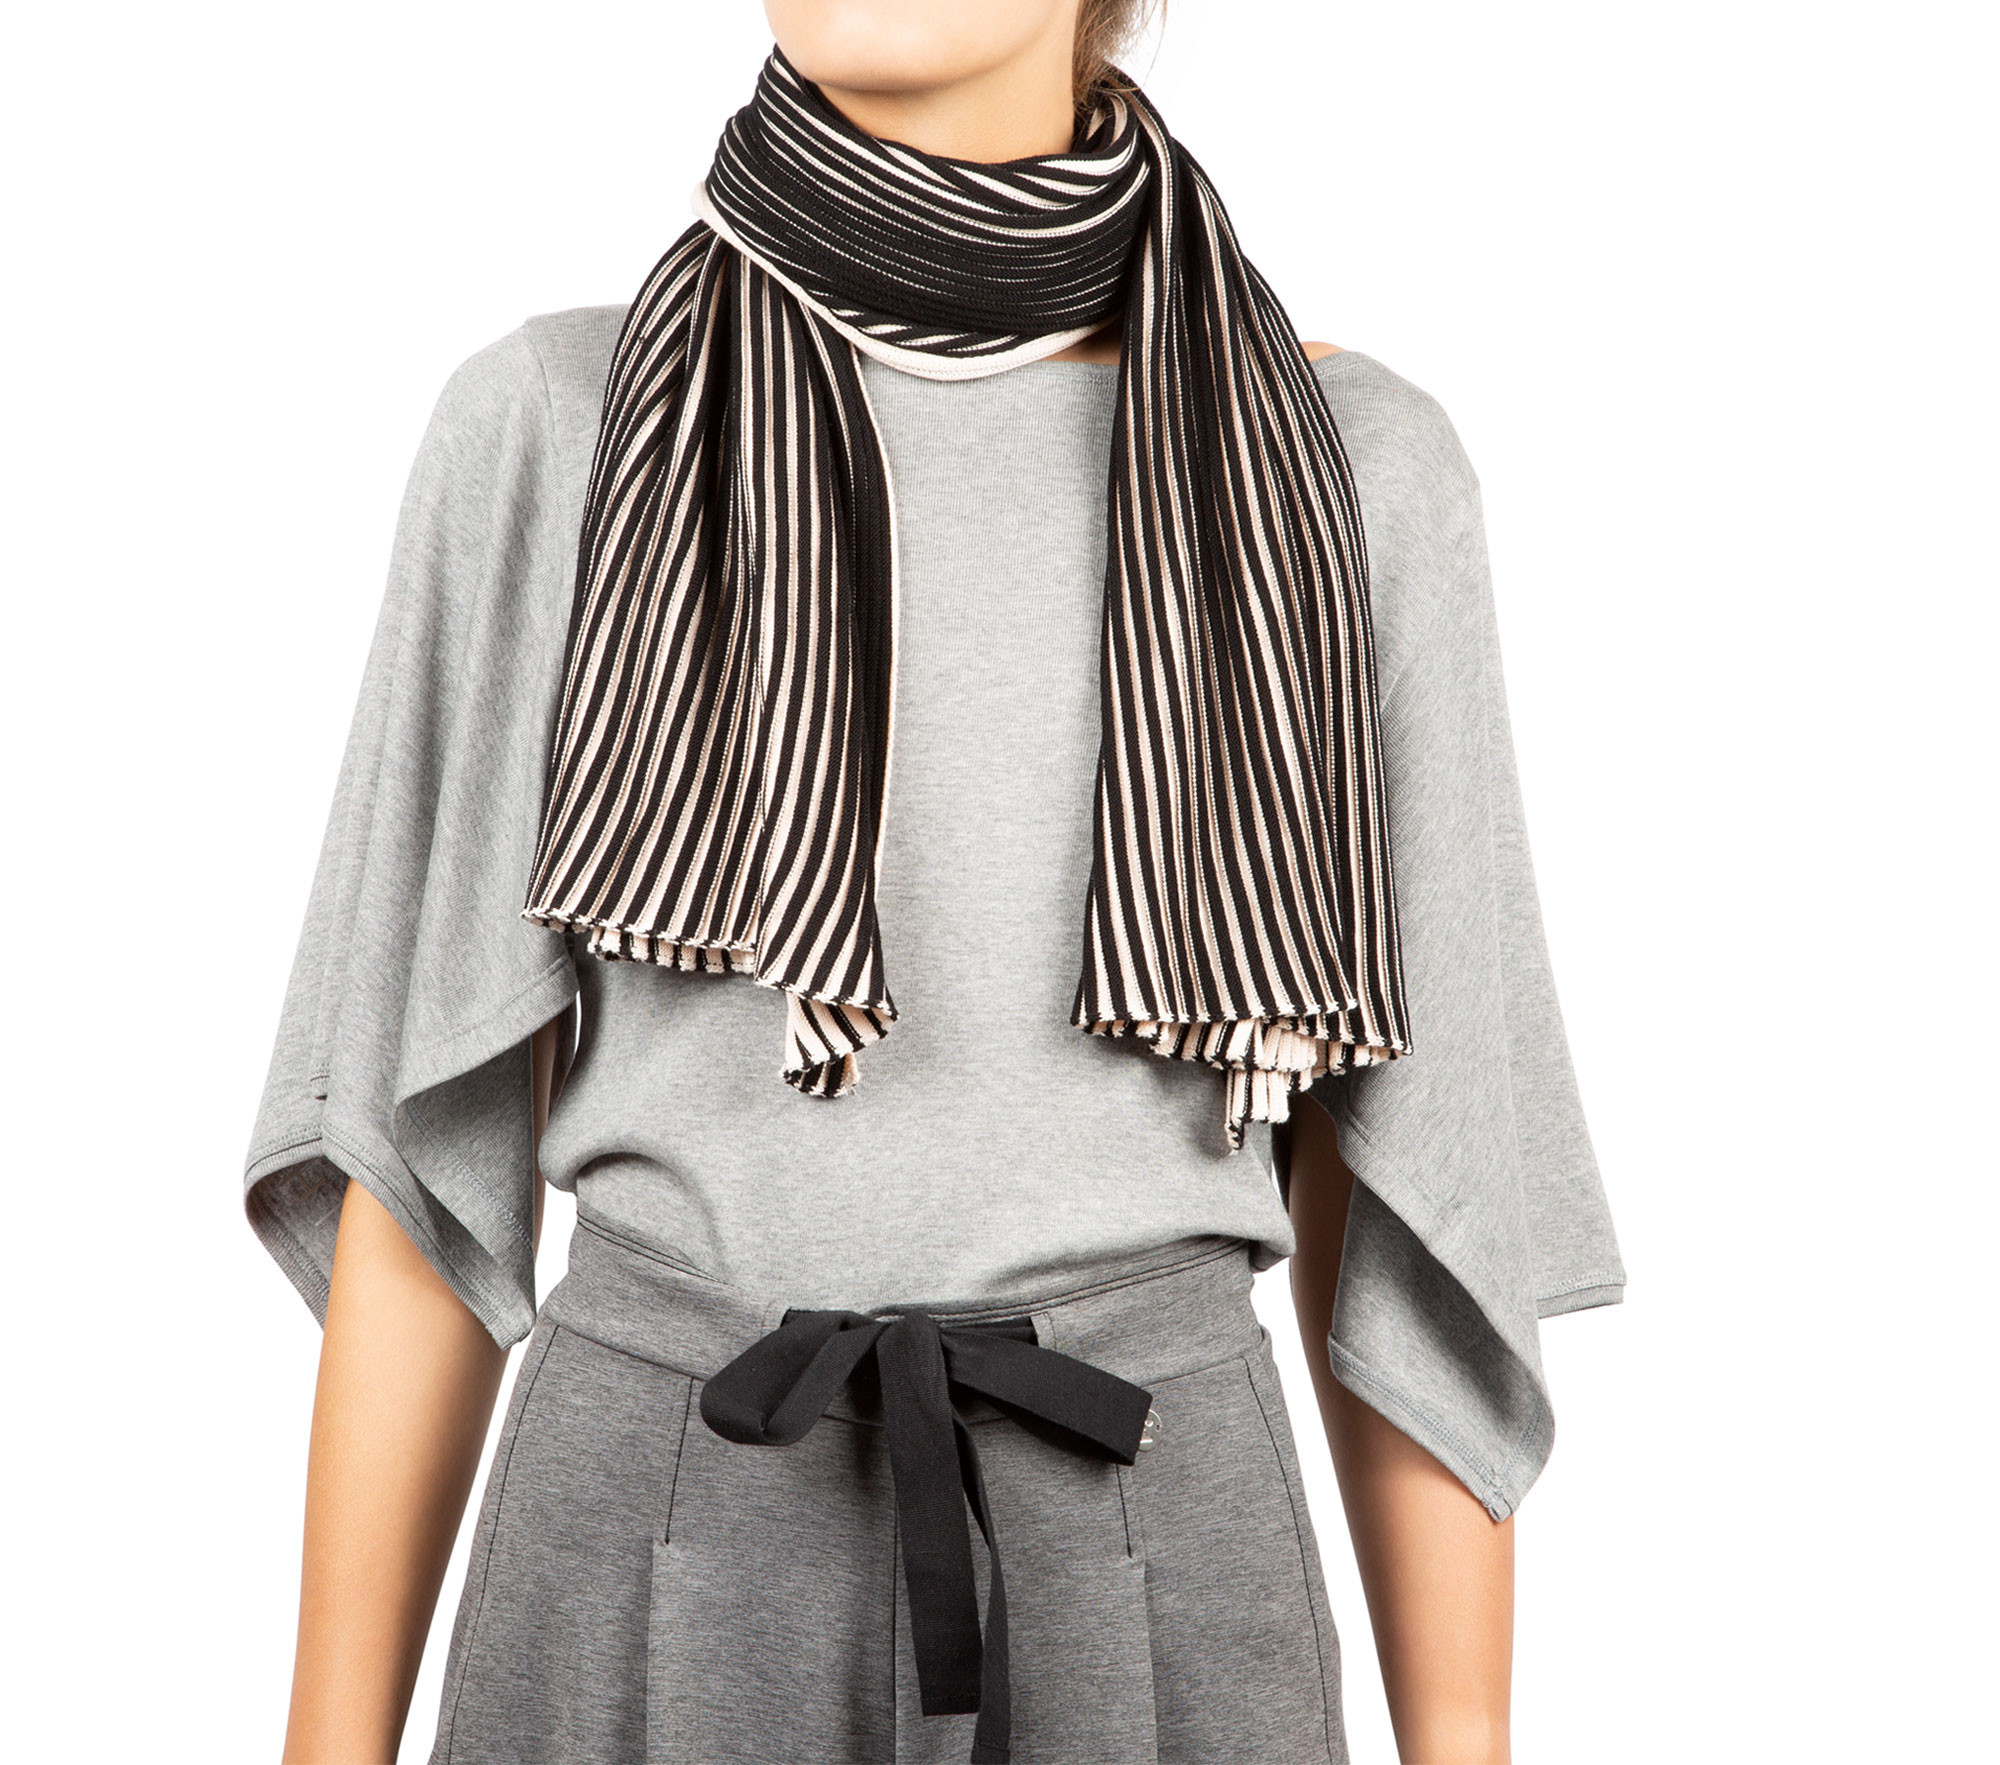 Two-colour ribbed knit, wide scarf